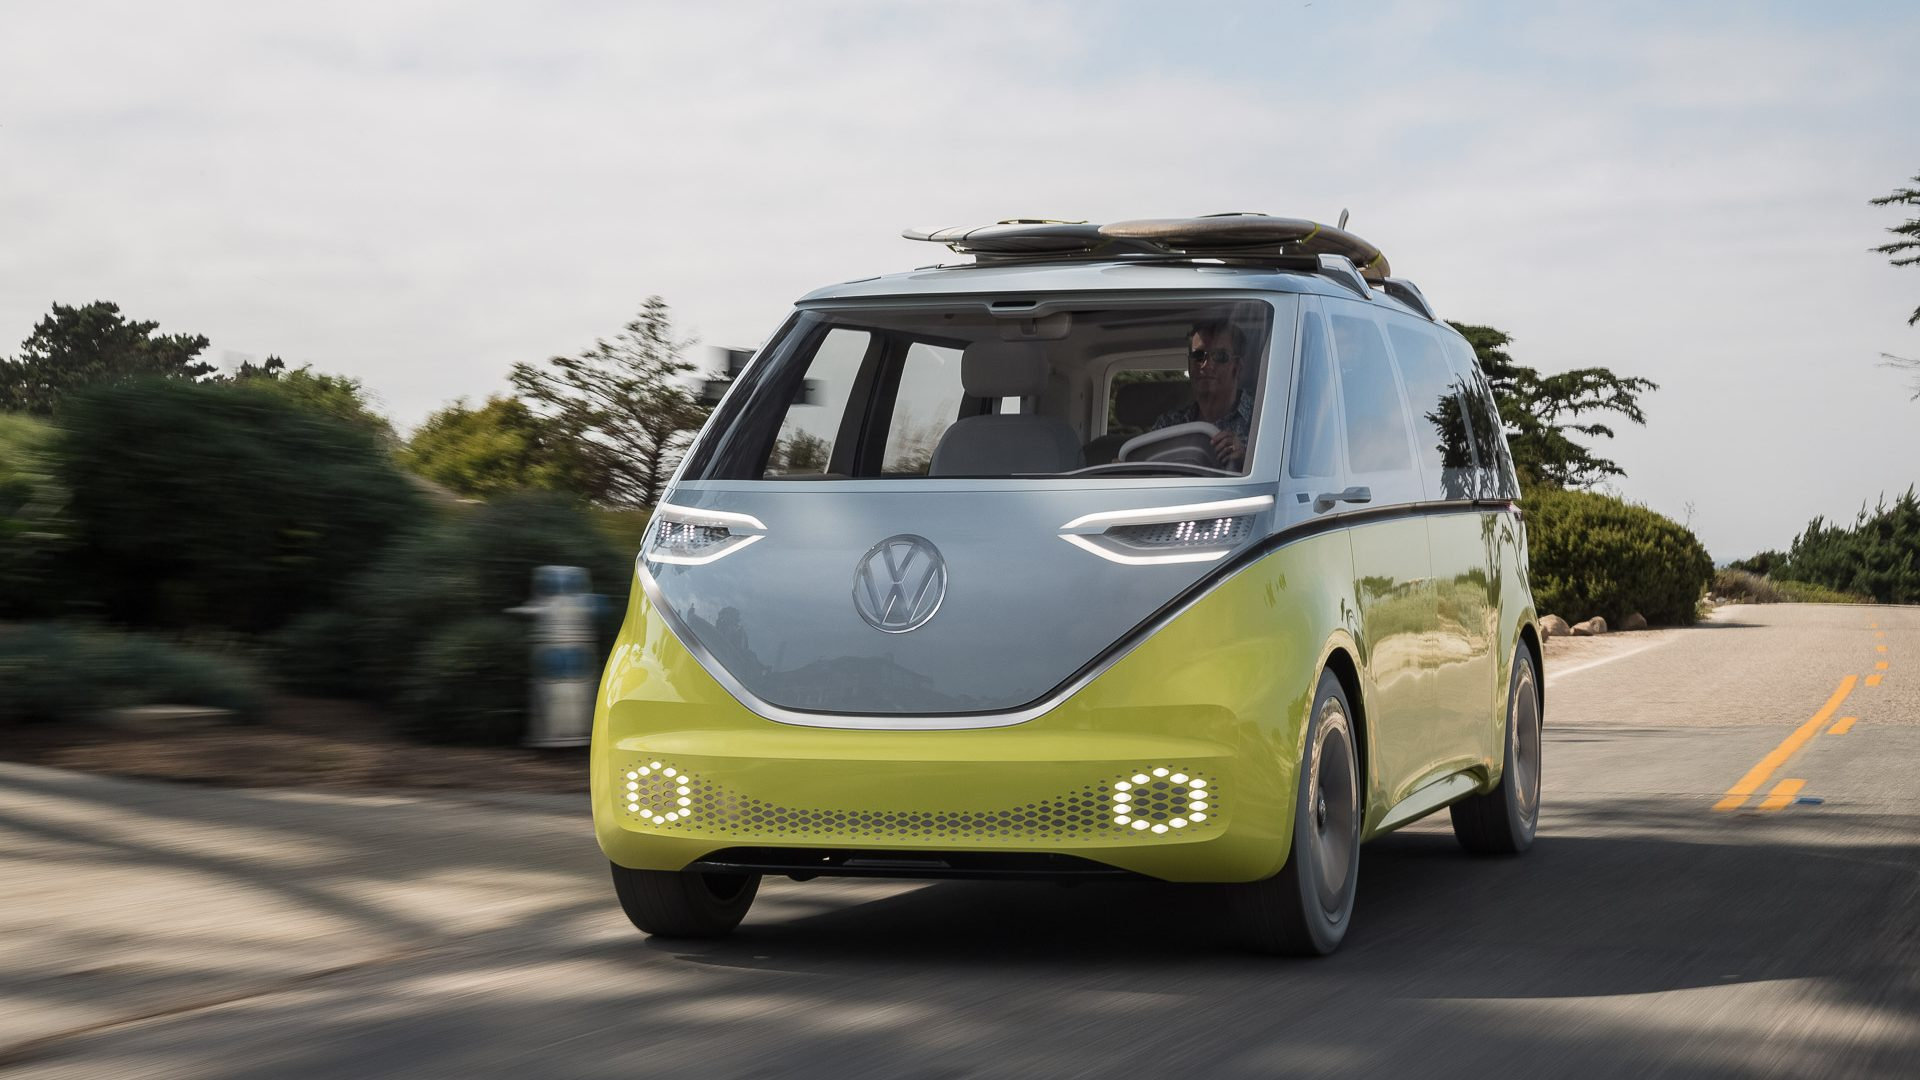 The legendary Volkswagen Kombi gets futuristic, all-electric upgrade